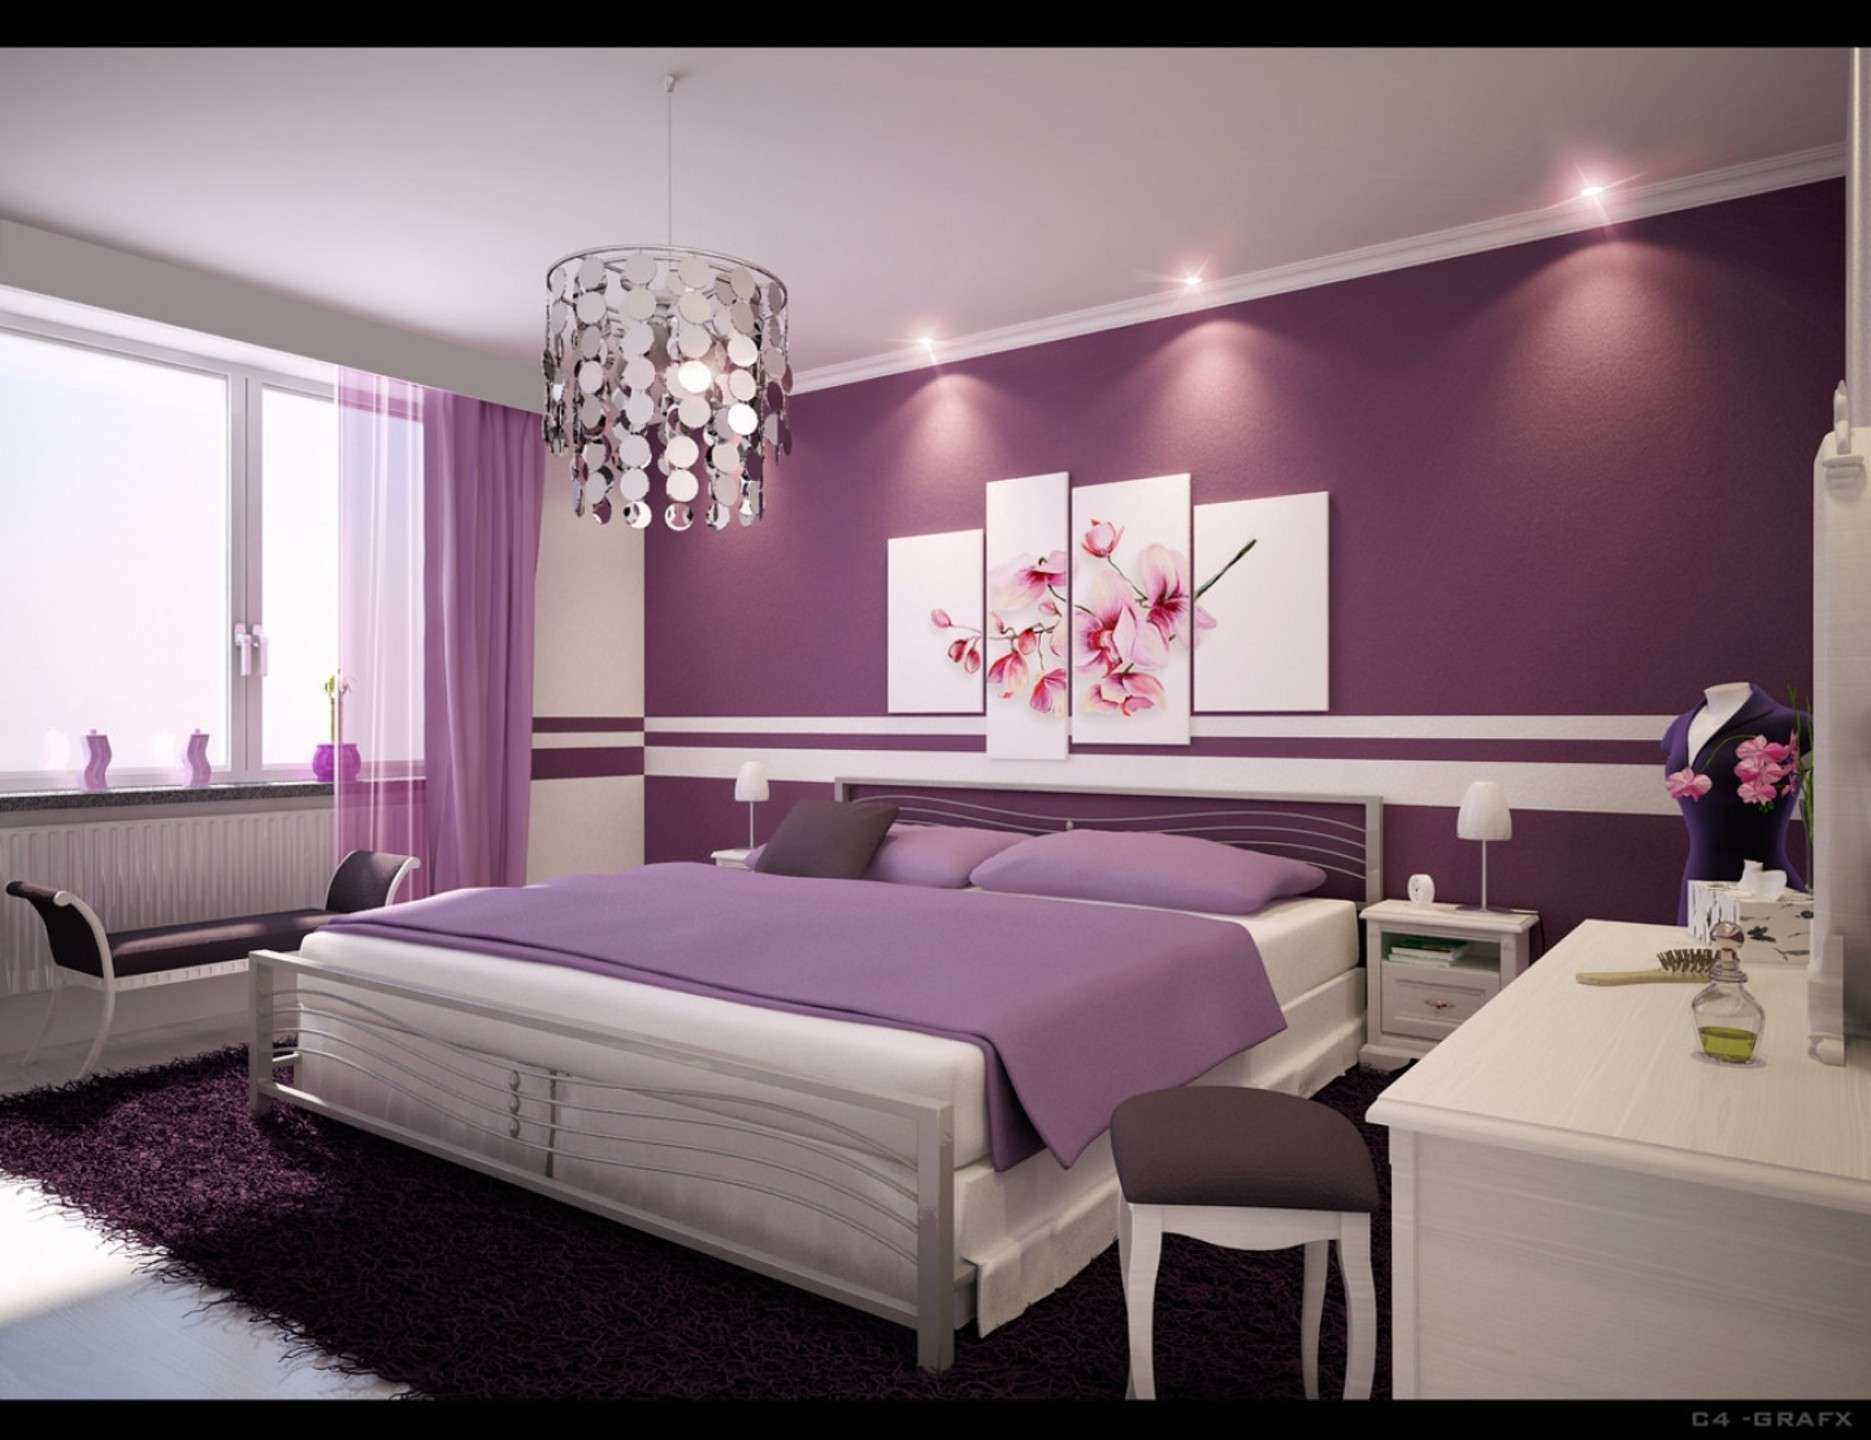 Wall Decor for Bedroom Unique Purple Wall Decor Living Room Best Bedroom Cute Decoration for